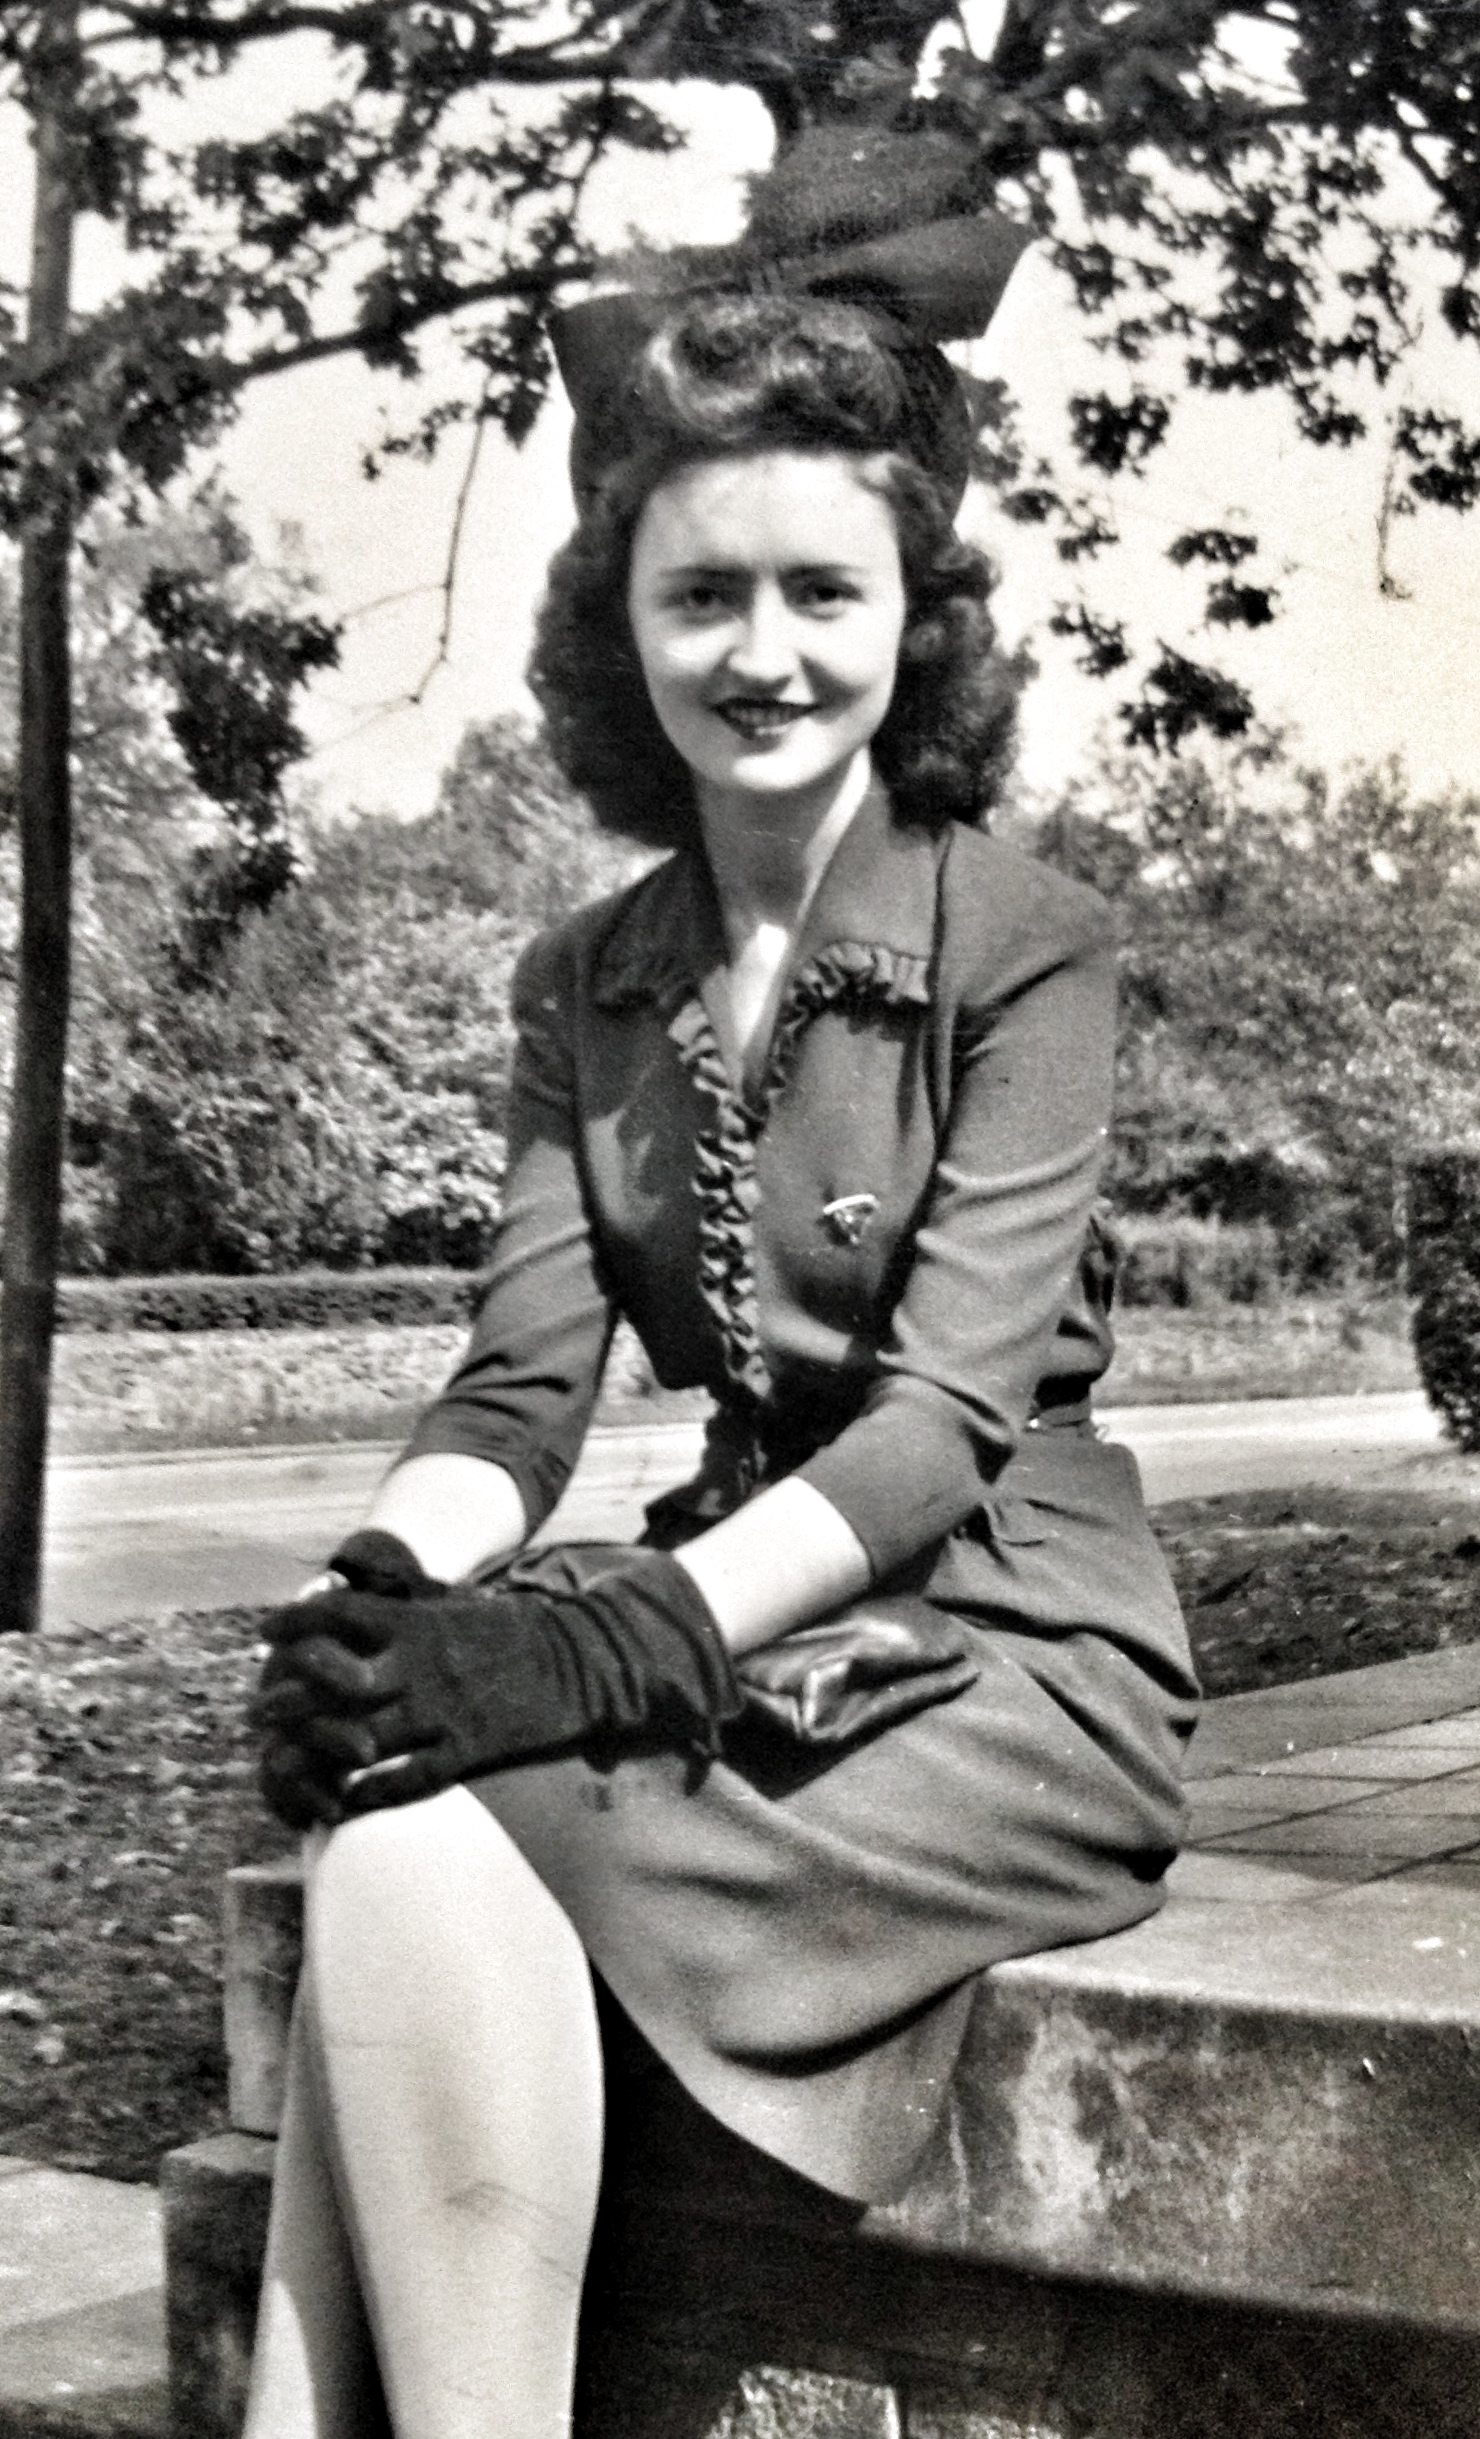 1940, black and white, beauty, grandmother, GM, society dame